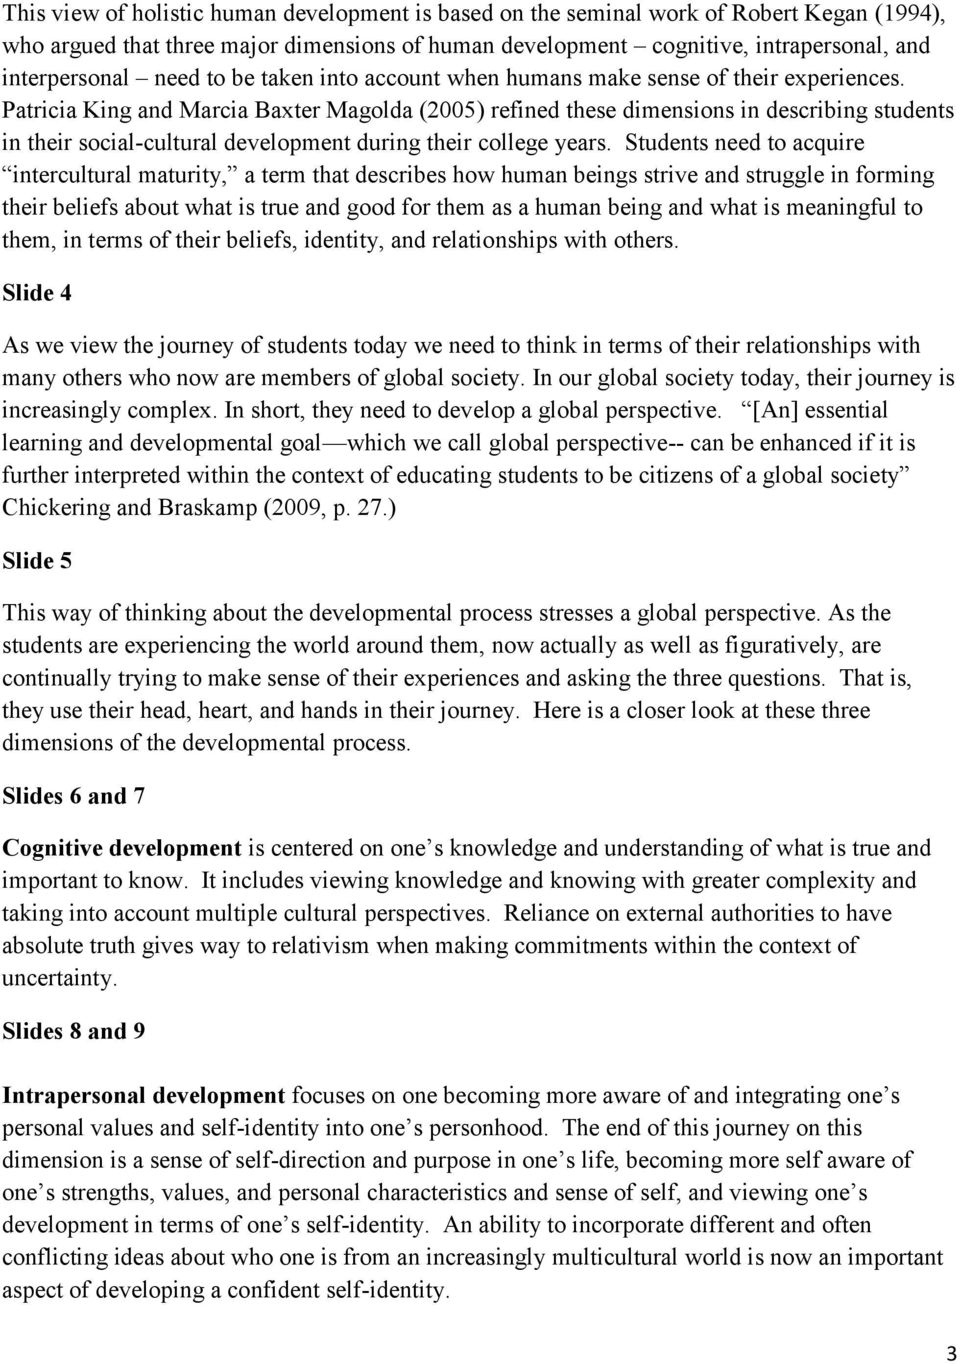 Patricia King and Marcia Baxter Magolda (2005) refined these dimensions in describing students in their social-cultural development during their college years.